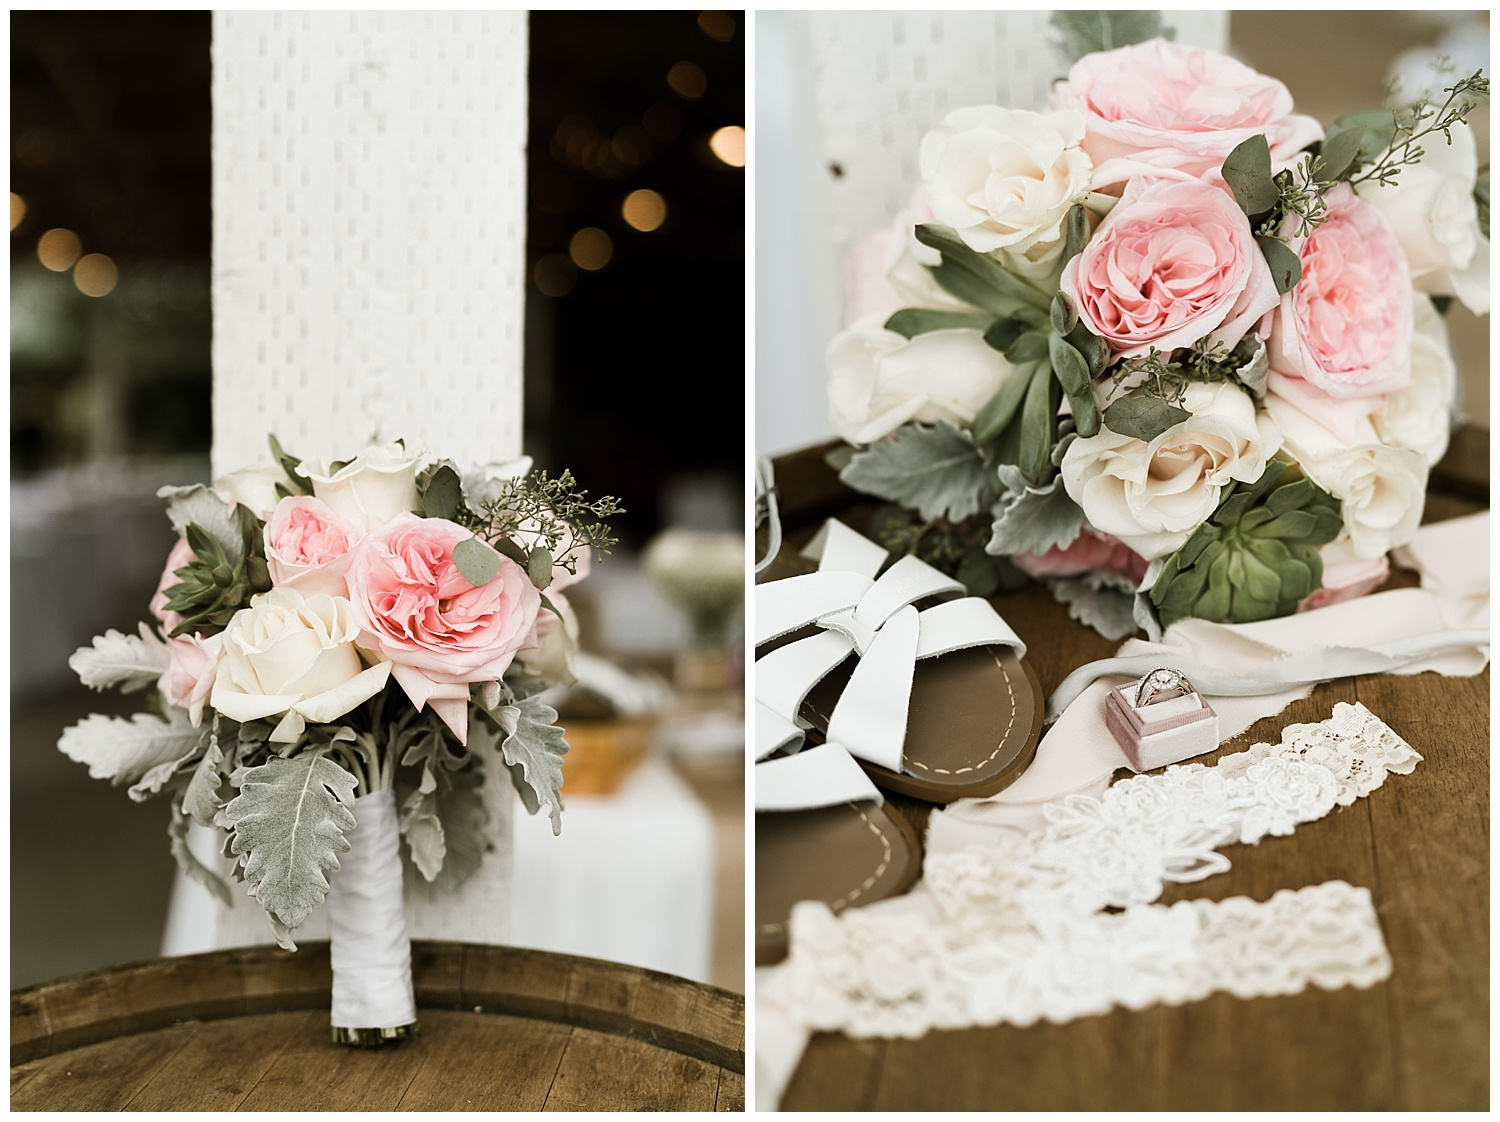 Rustic Chic Wedding | Bridal details | PNW wedding photographer